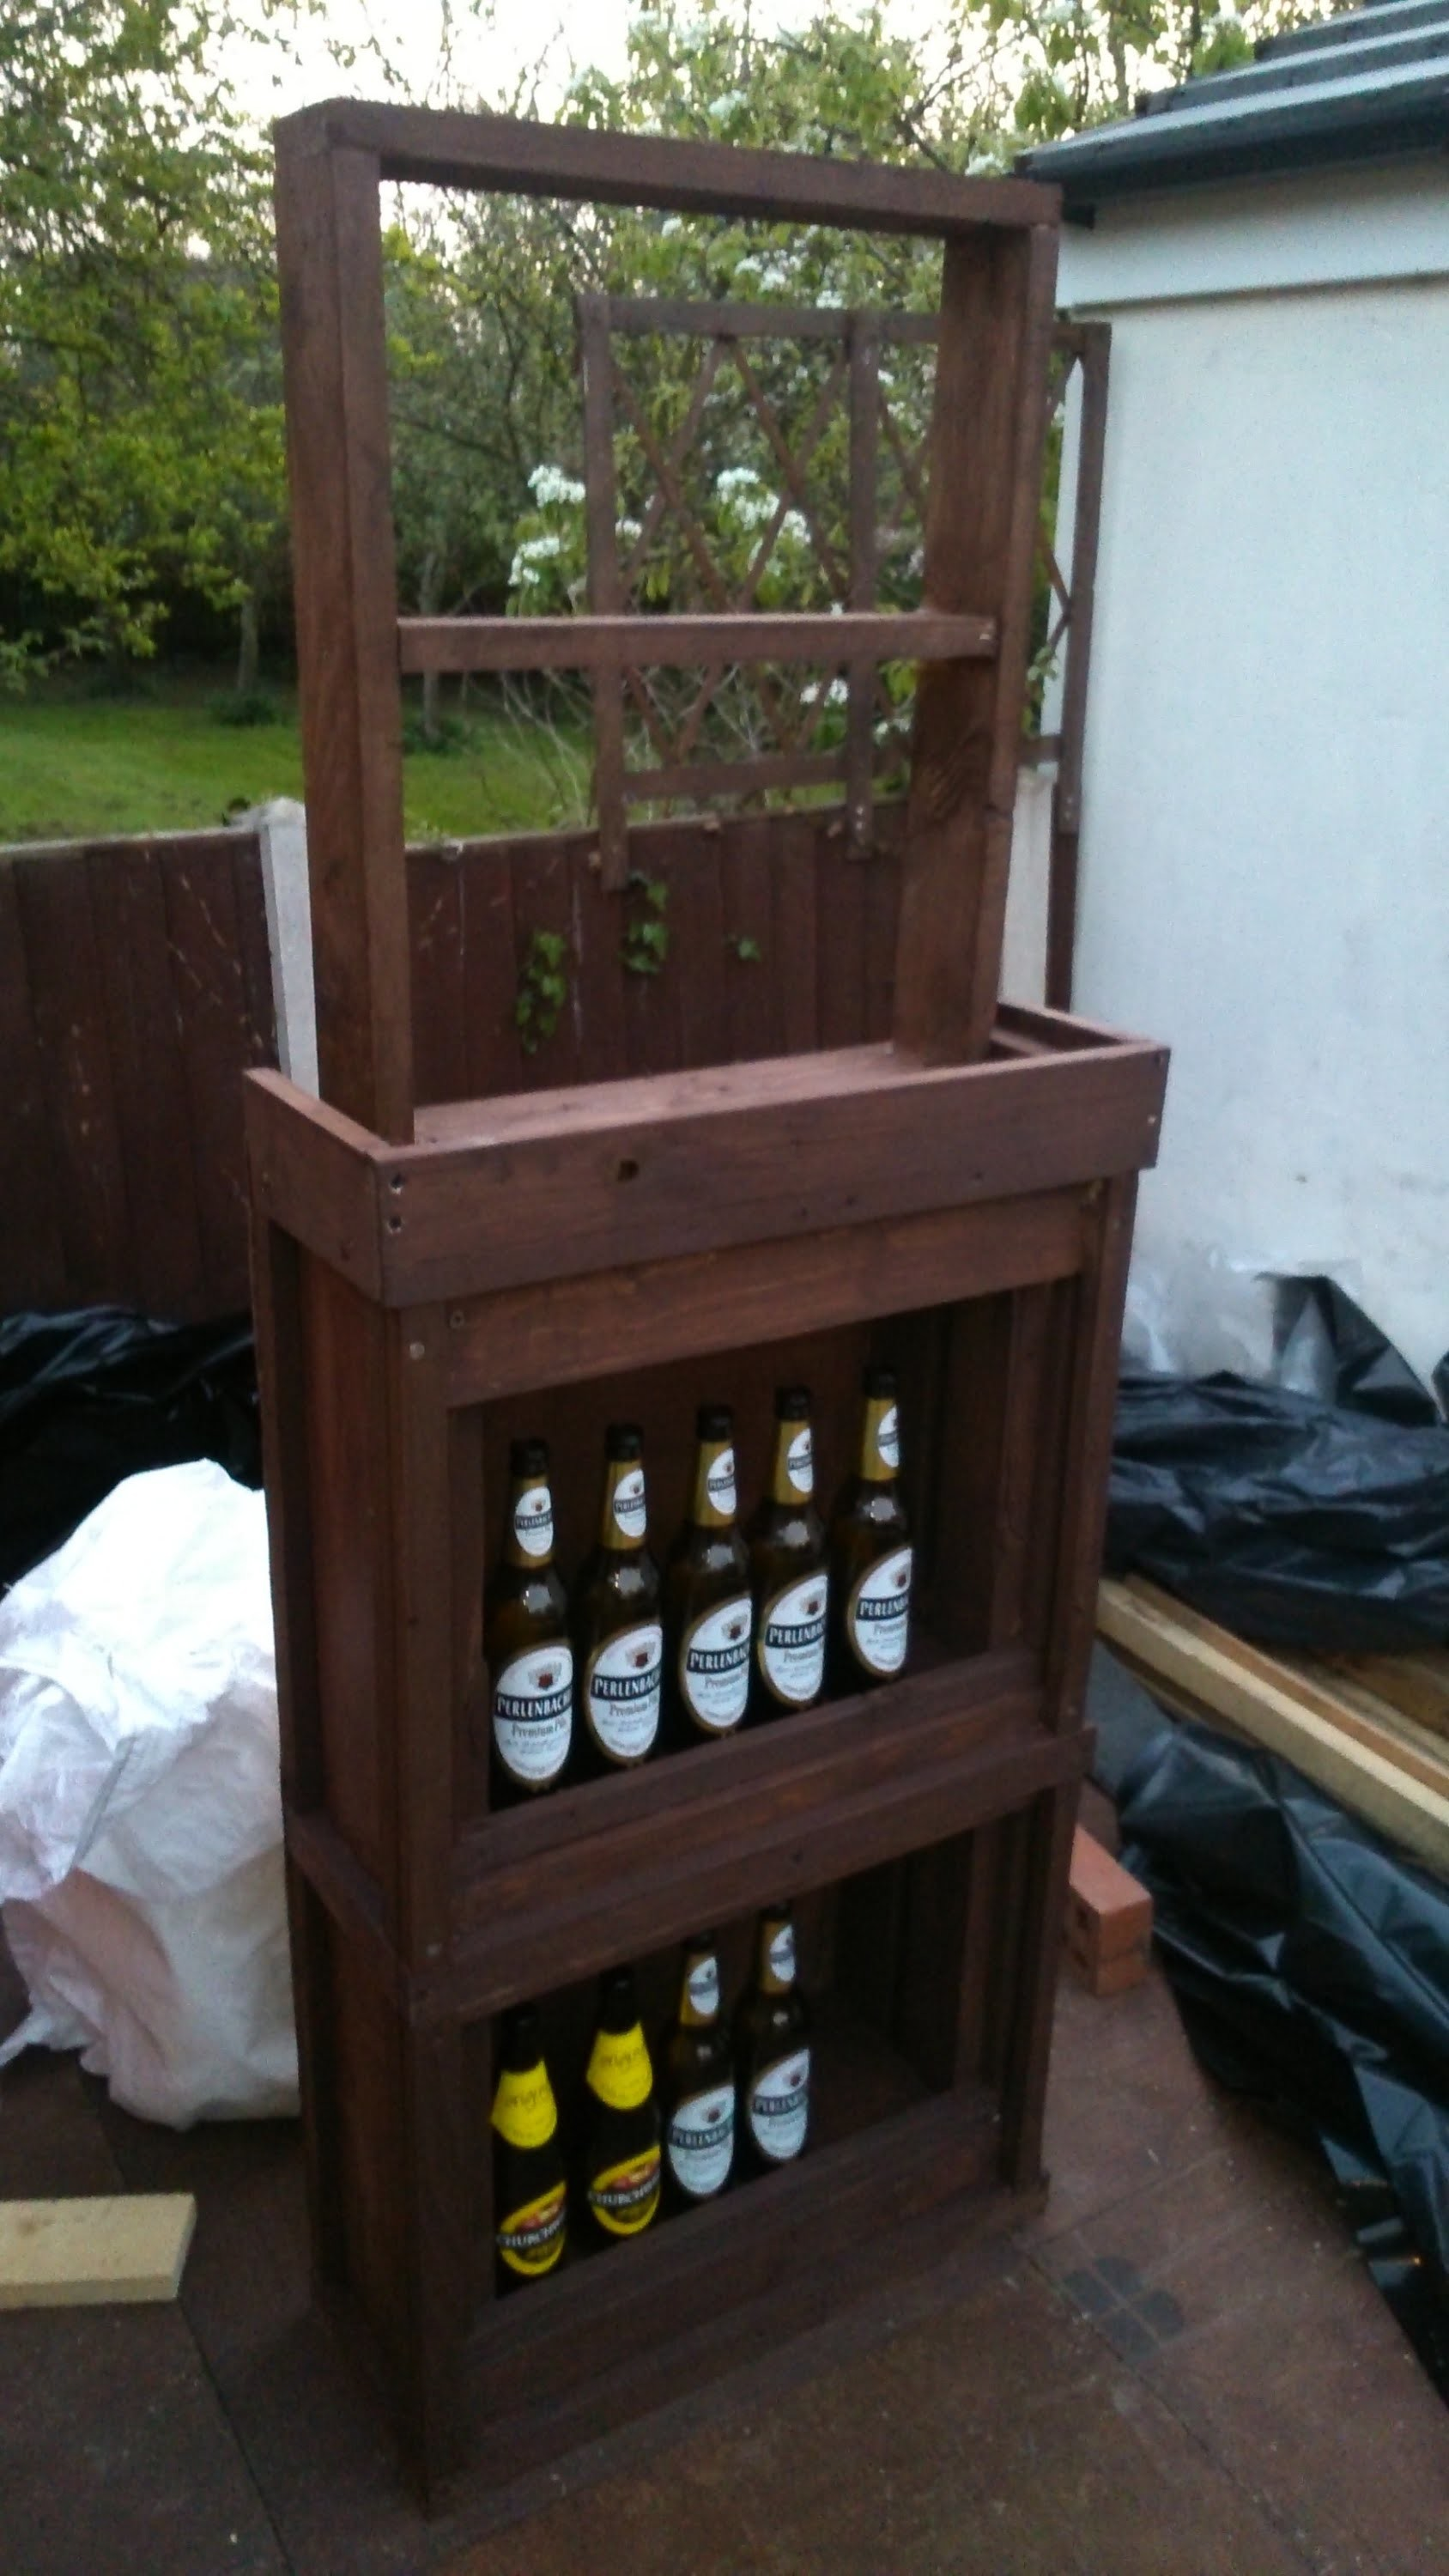 How To Build Your Own Bar Out Of Pallet Wood Step By Step, My Crafts ...